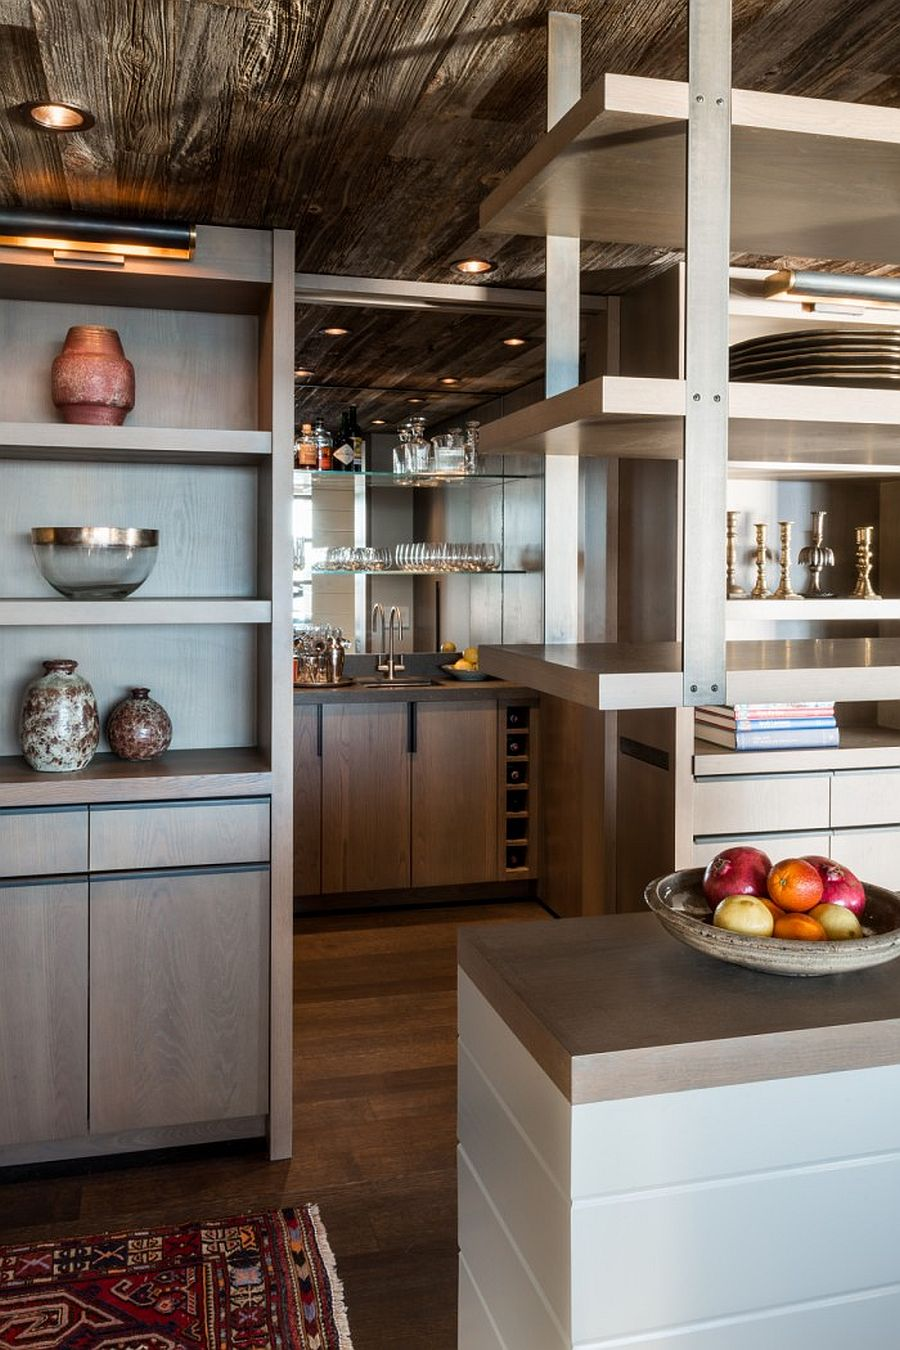 Multiple open shelves and closed cabinets create a flexible and functional modern kitchen